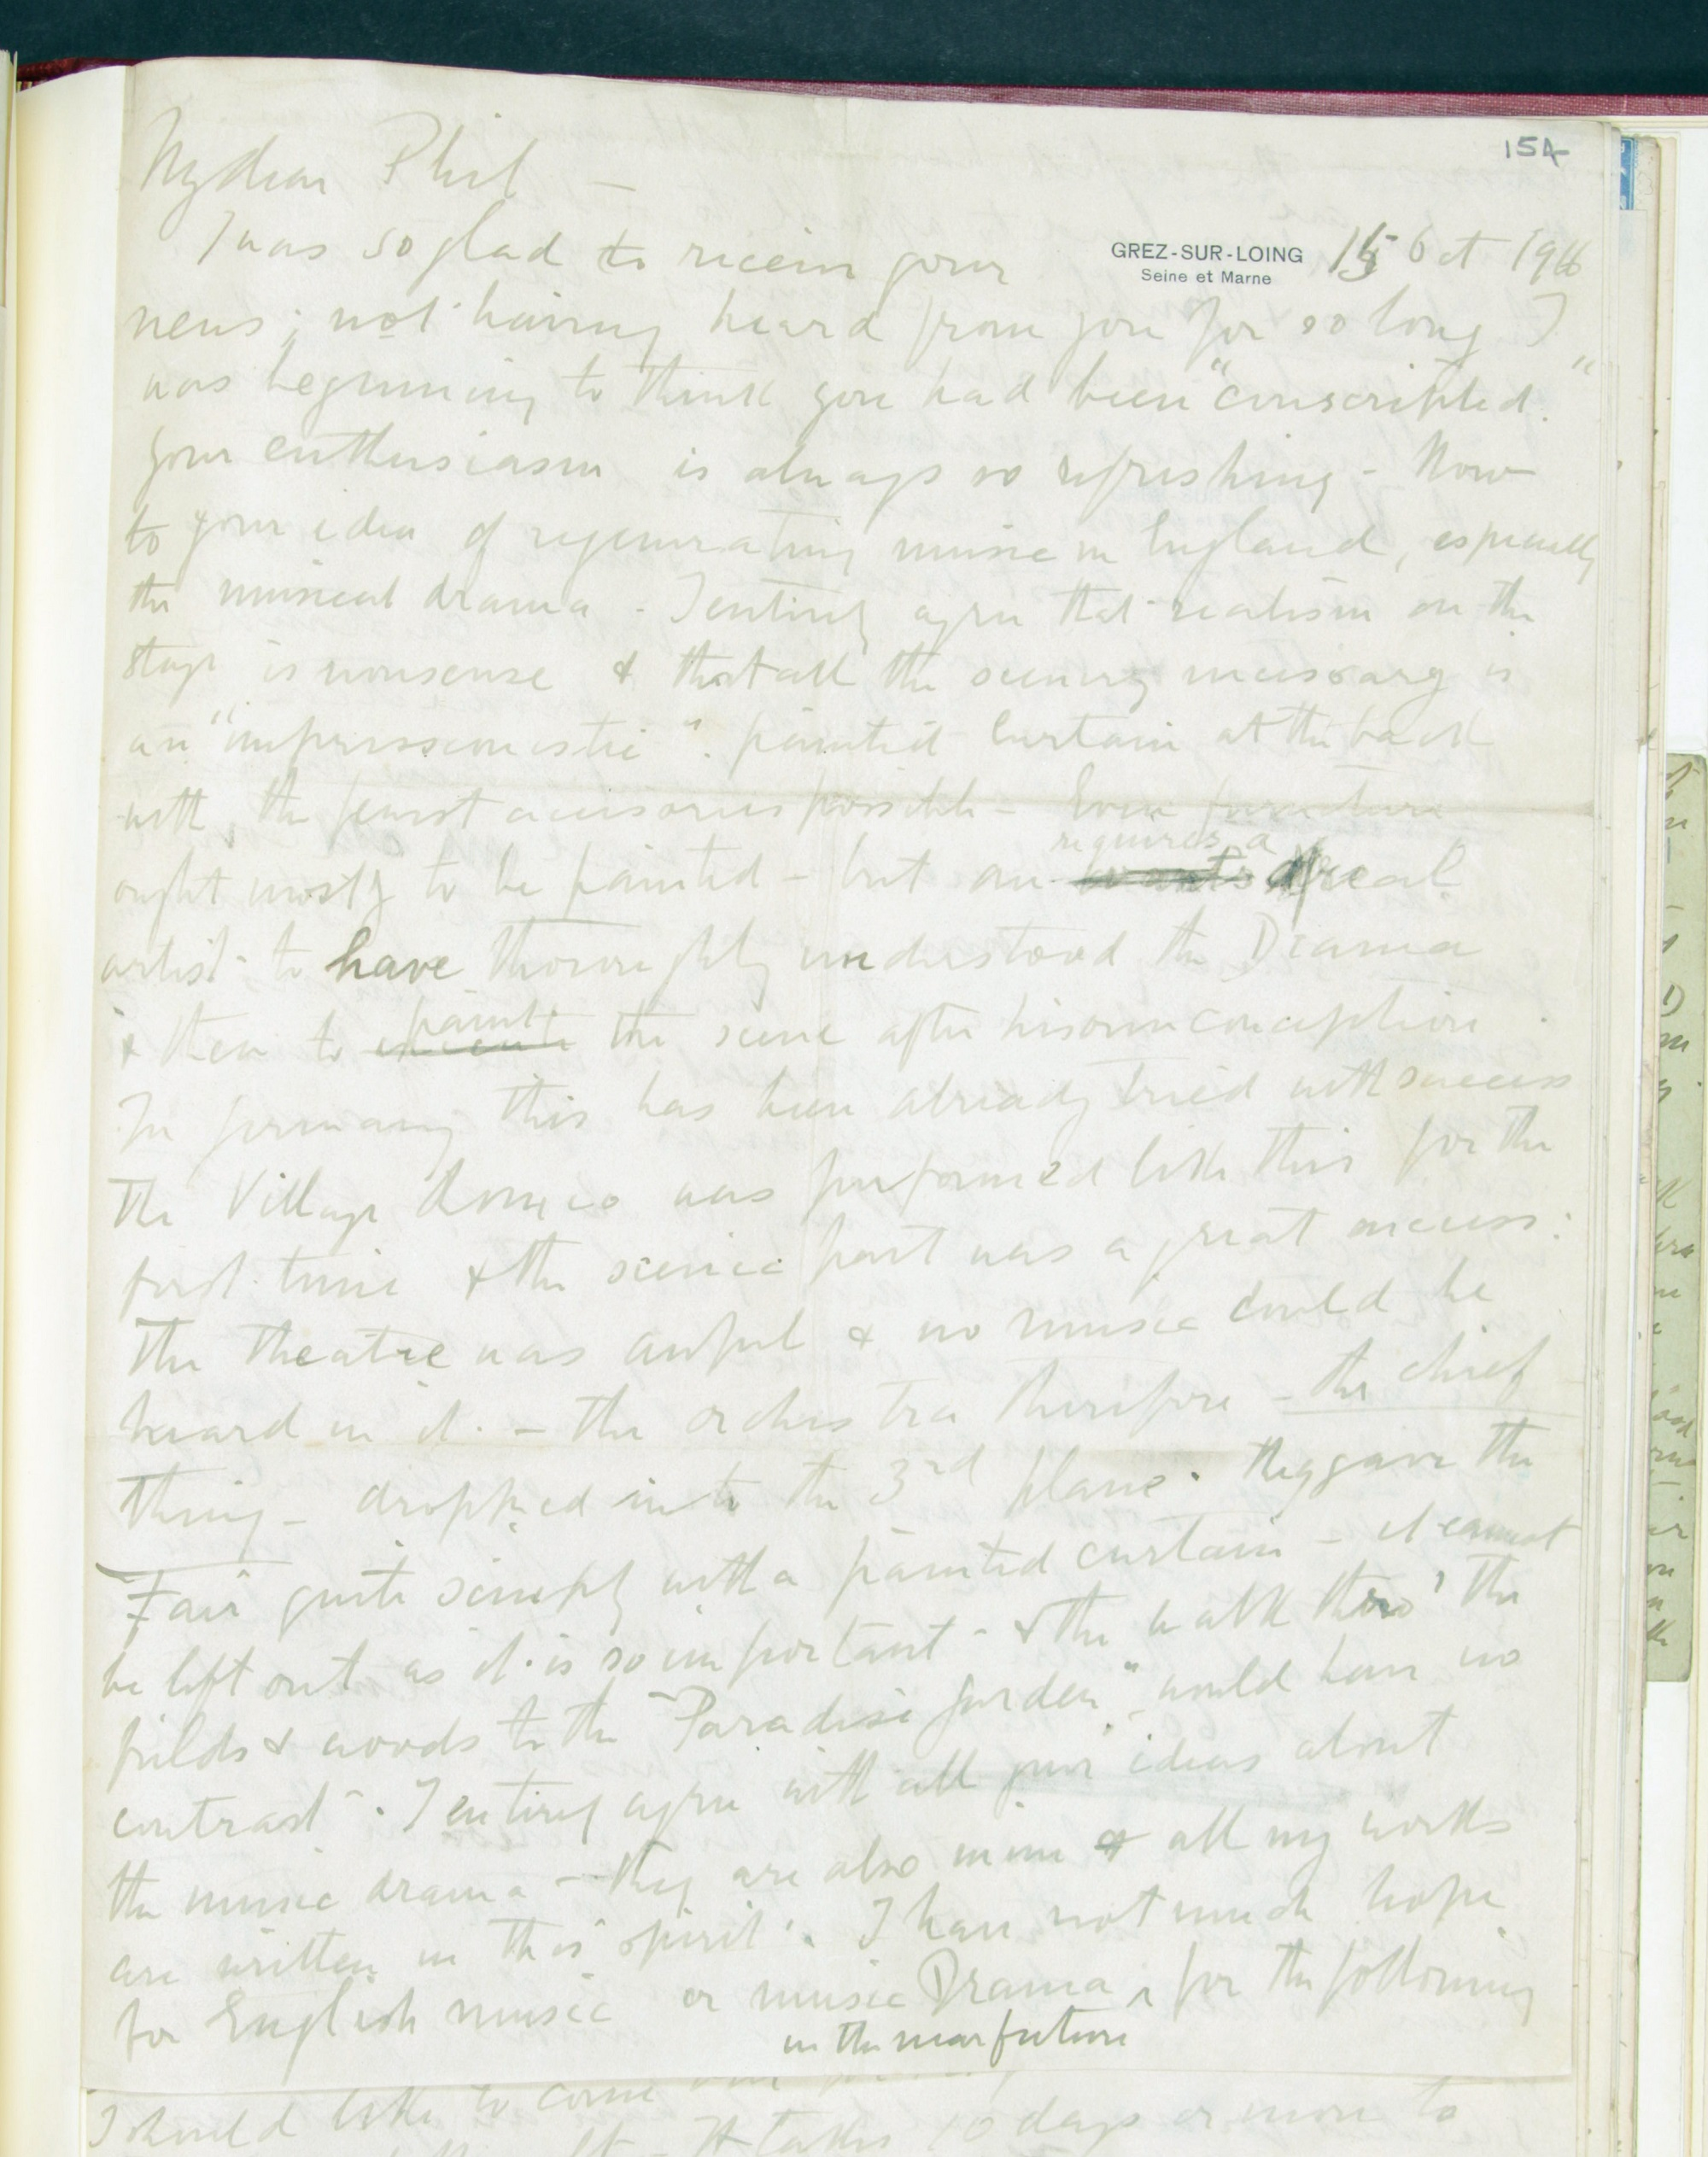 Frederick Delius, Letter to Philip Heseltine, 15 October 1916, f. 154r